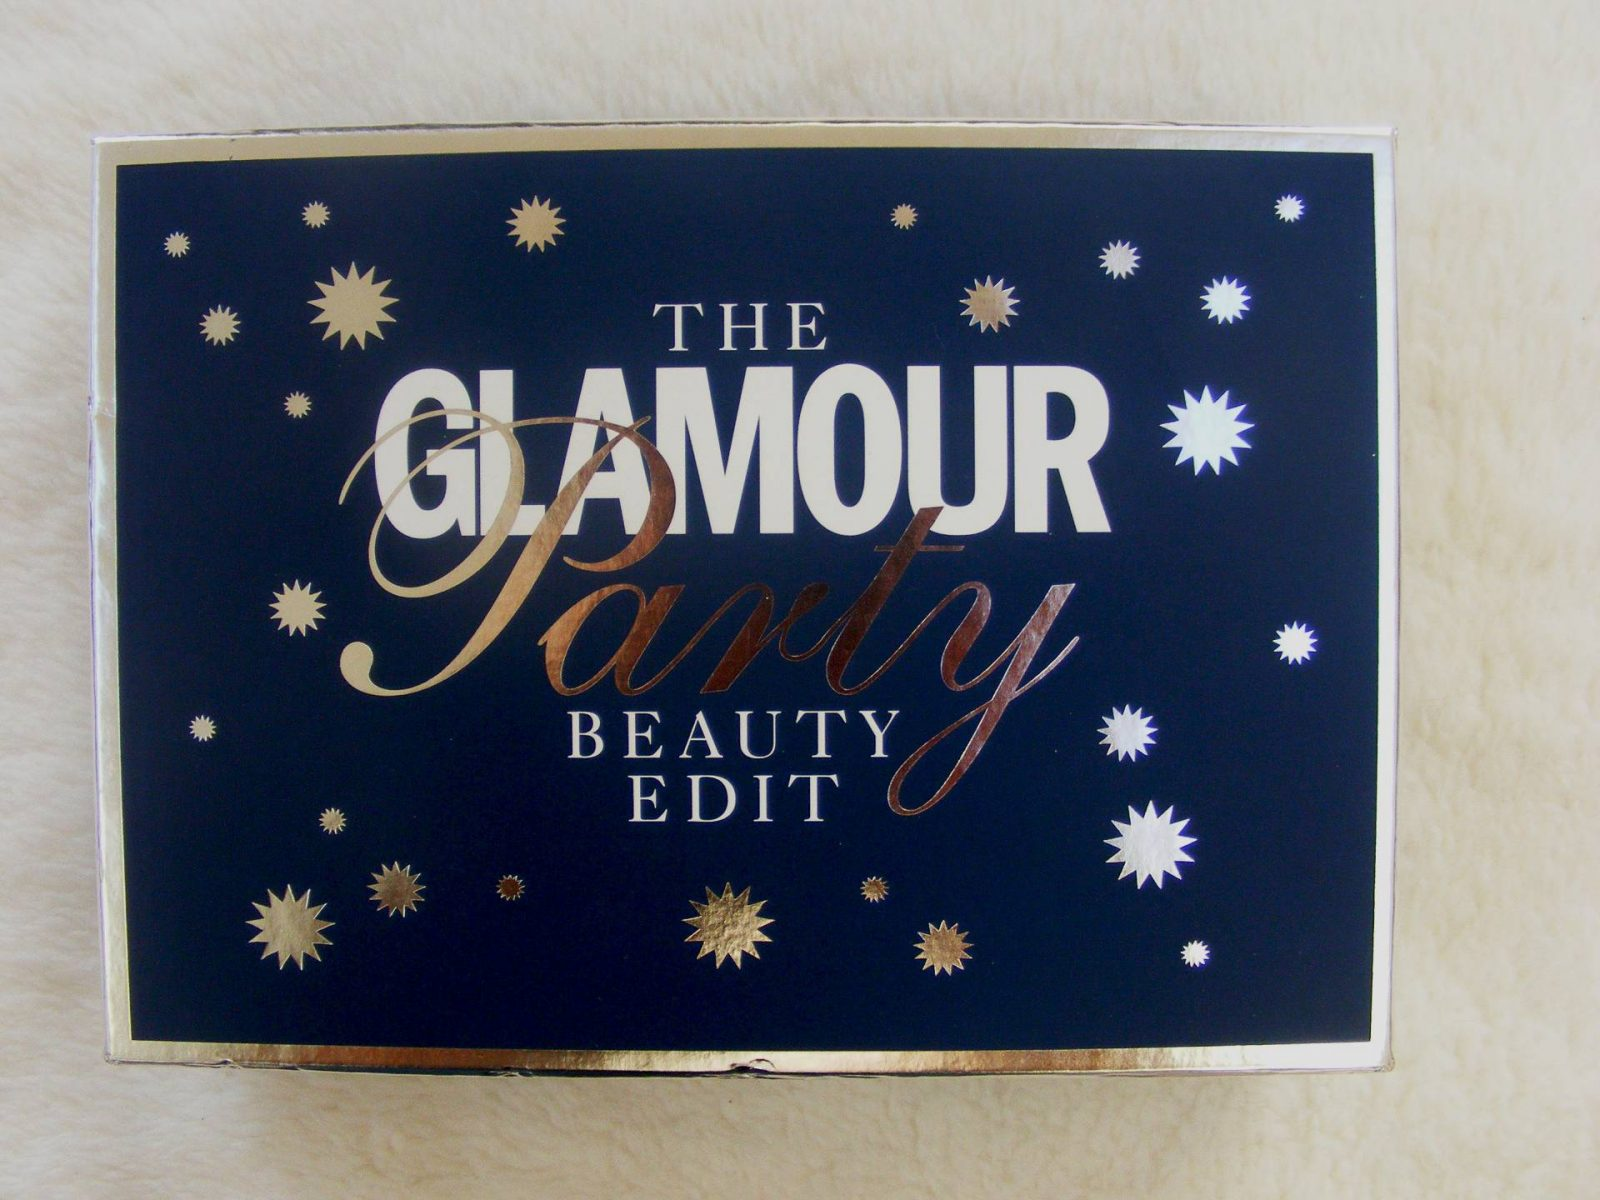 Glamour Beauty Party Edit box